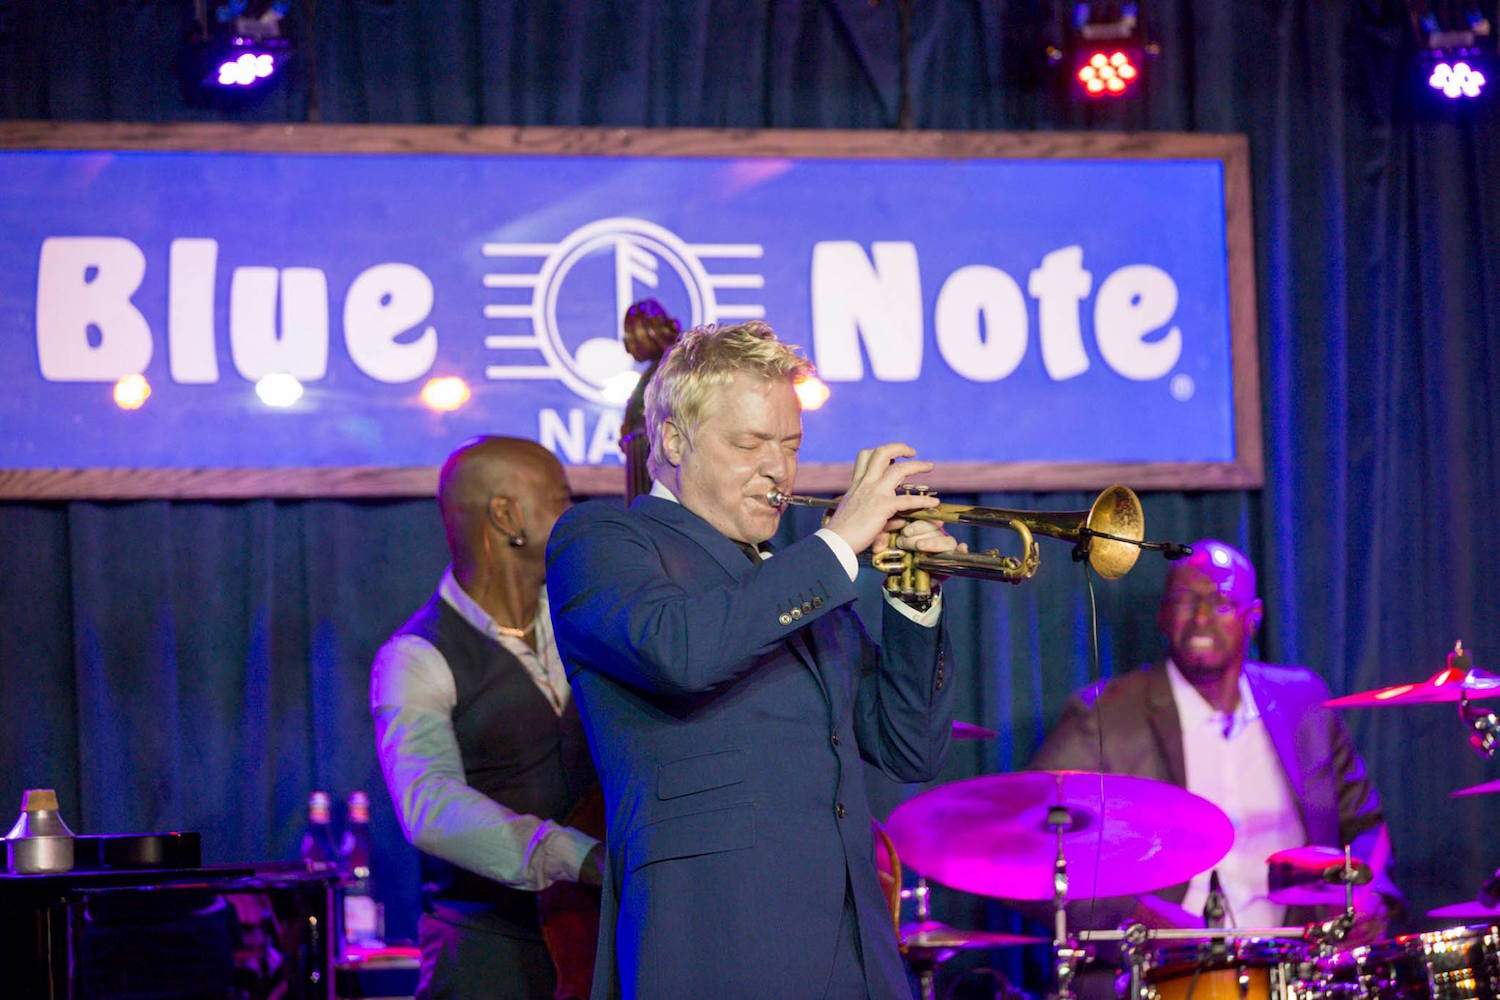 Chriss Botti performs at Blue Note Napa